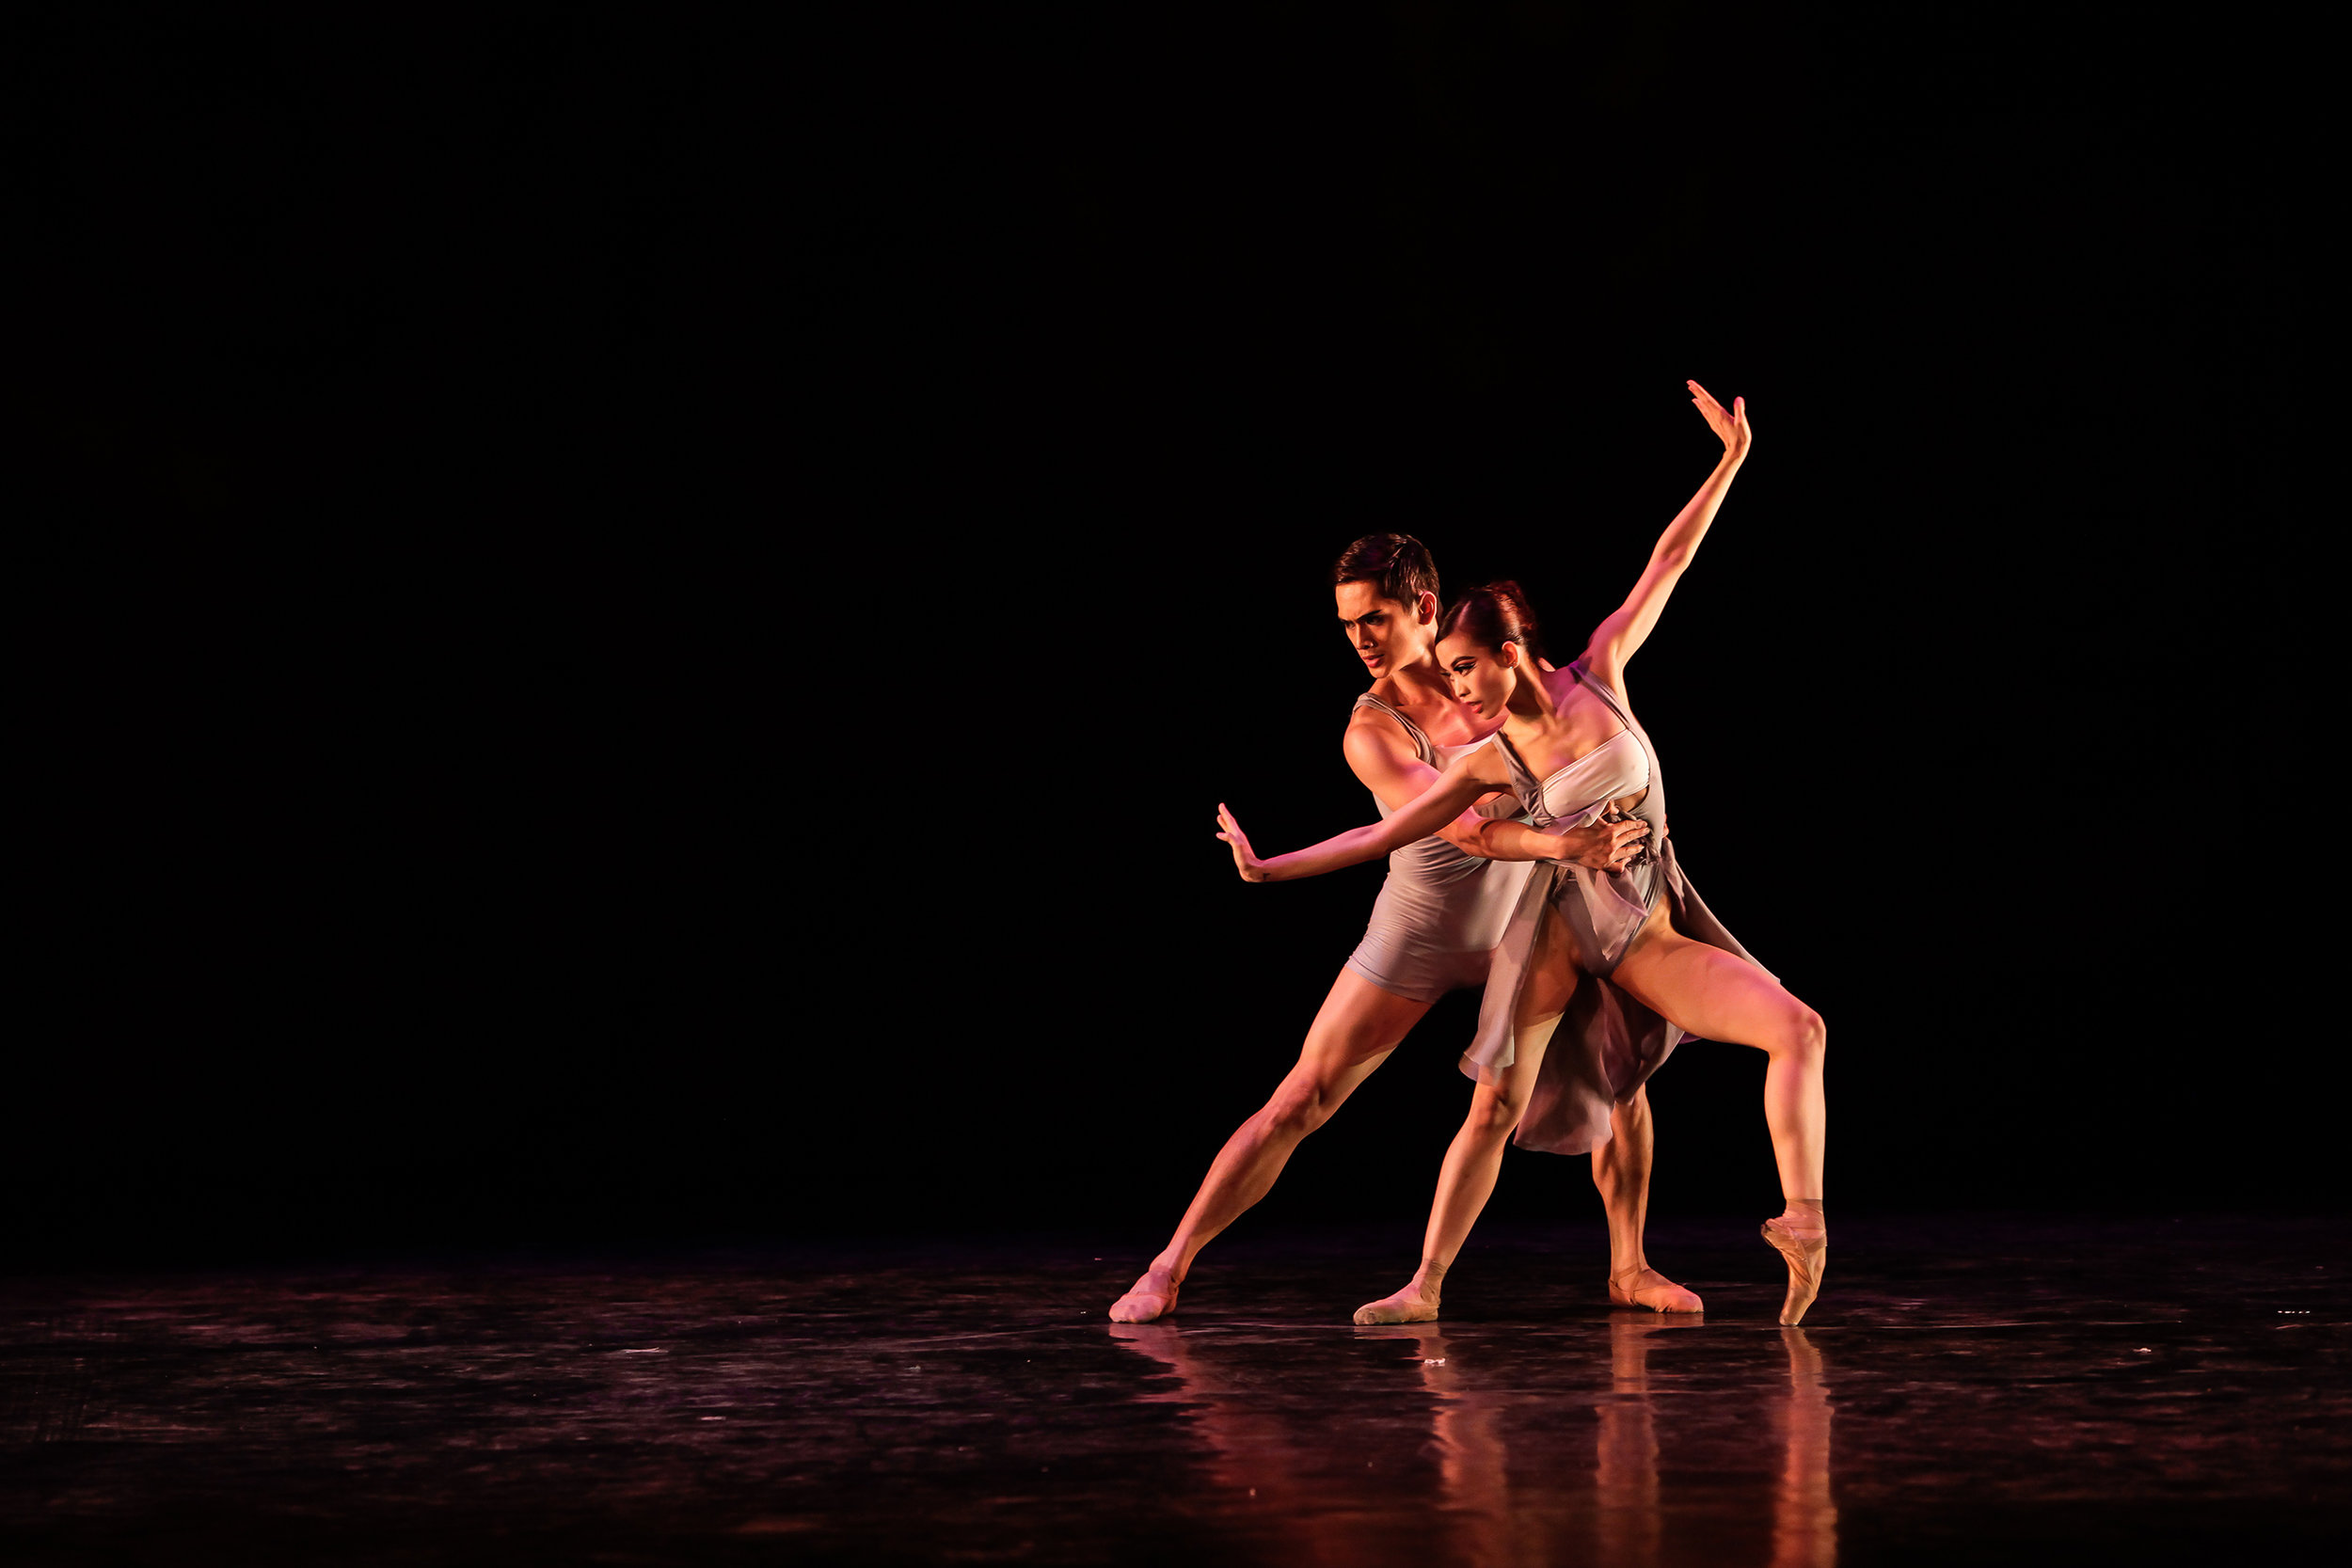 MAZN    is a contemporary choreography by Bam Damian that has become like a signature piece for Joan Sia and Alfren Salgado. Photo by Jojo Mamangun